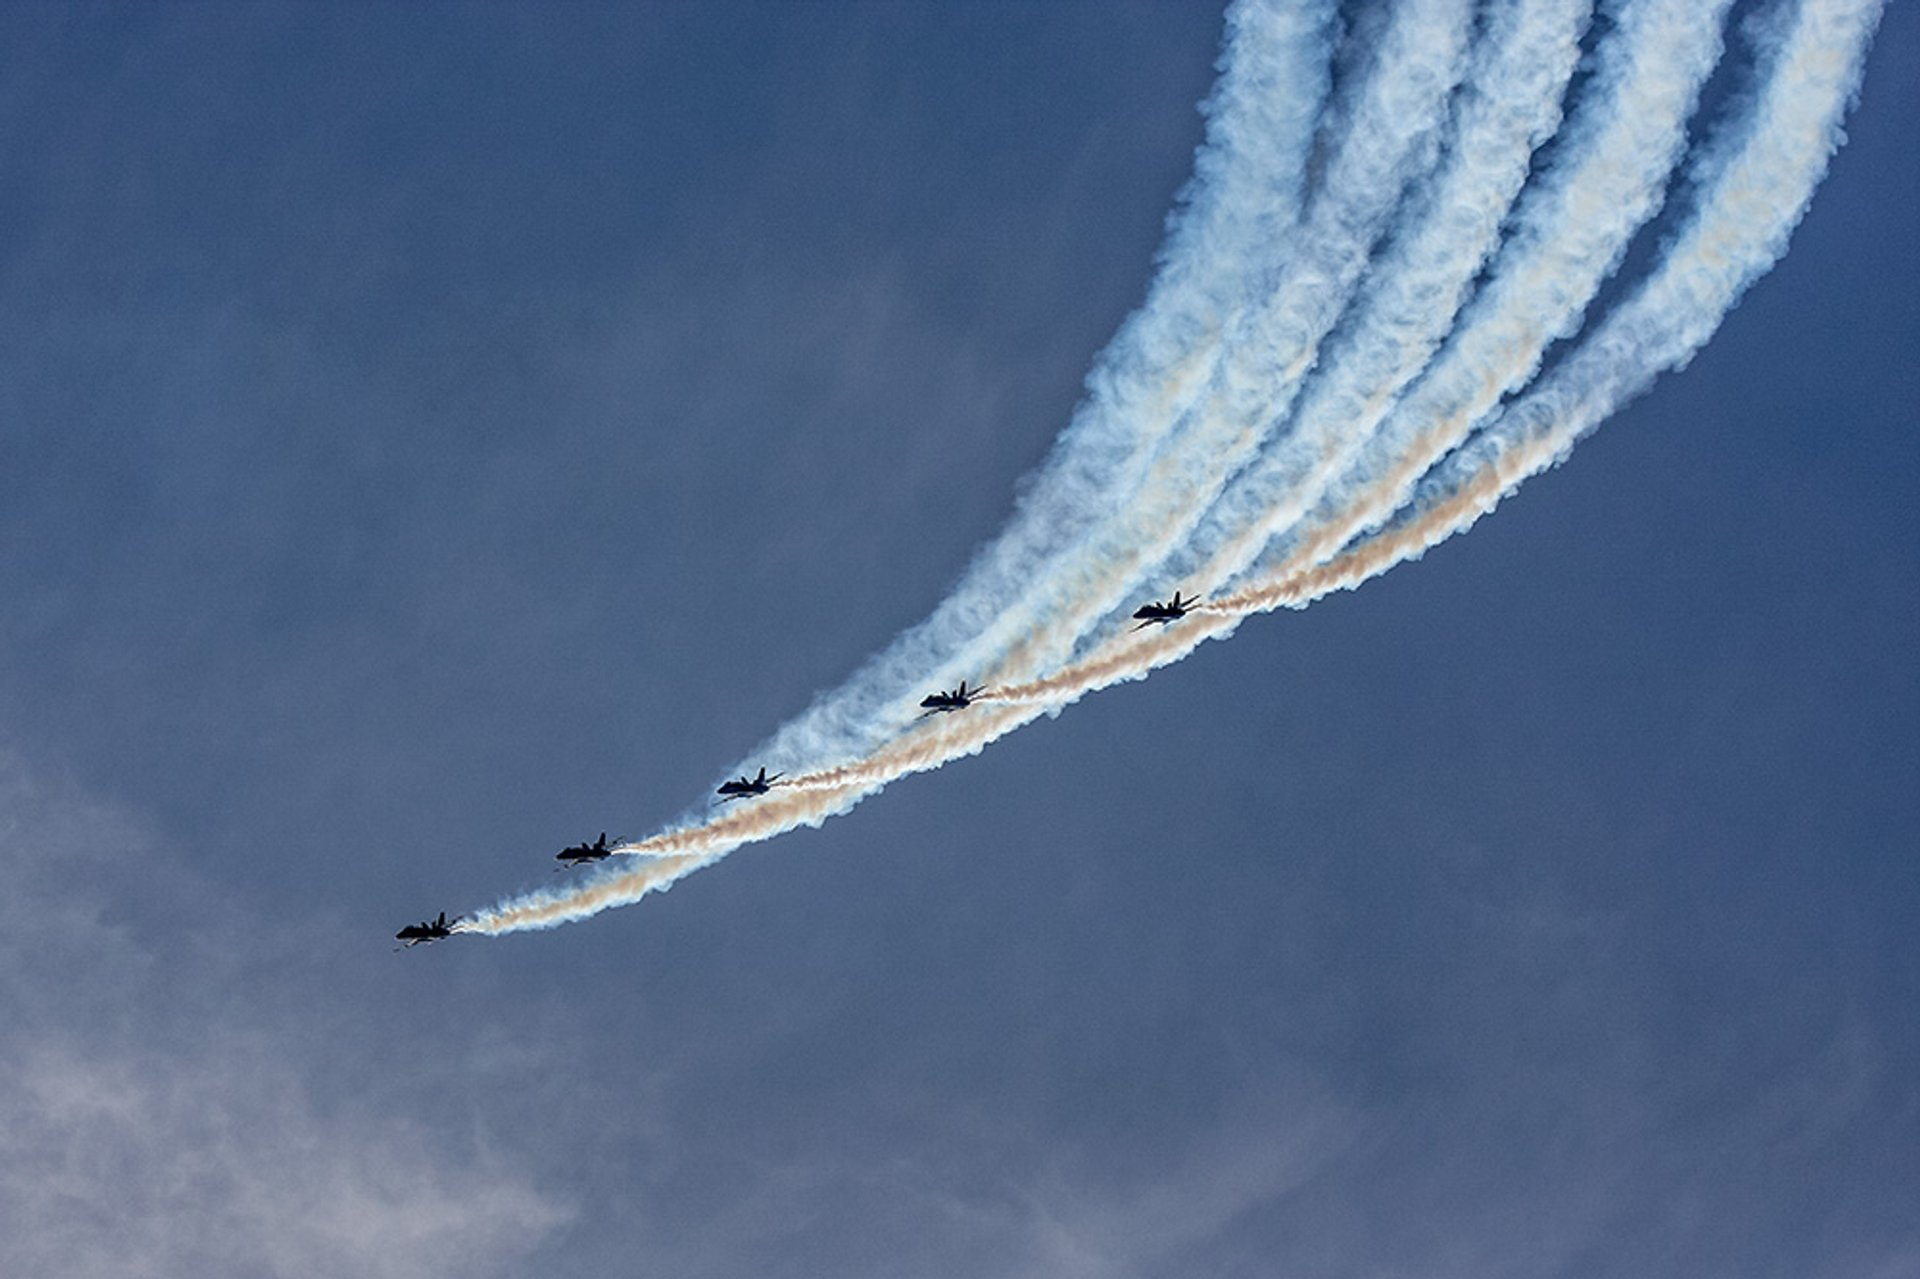 Navy Blue Angels perform during rehearsal at the Baltimore Fleet Week Air Show 2020